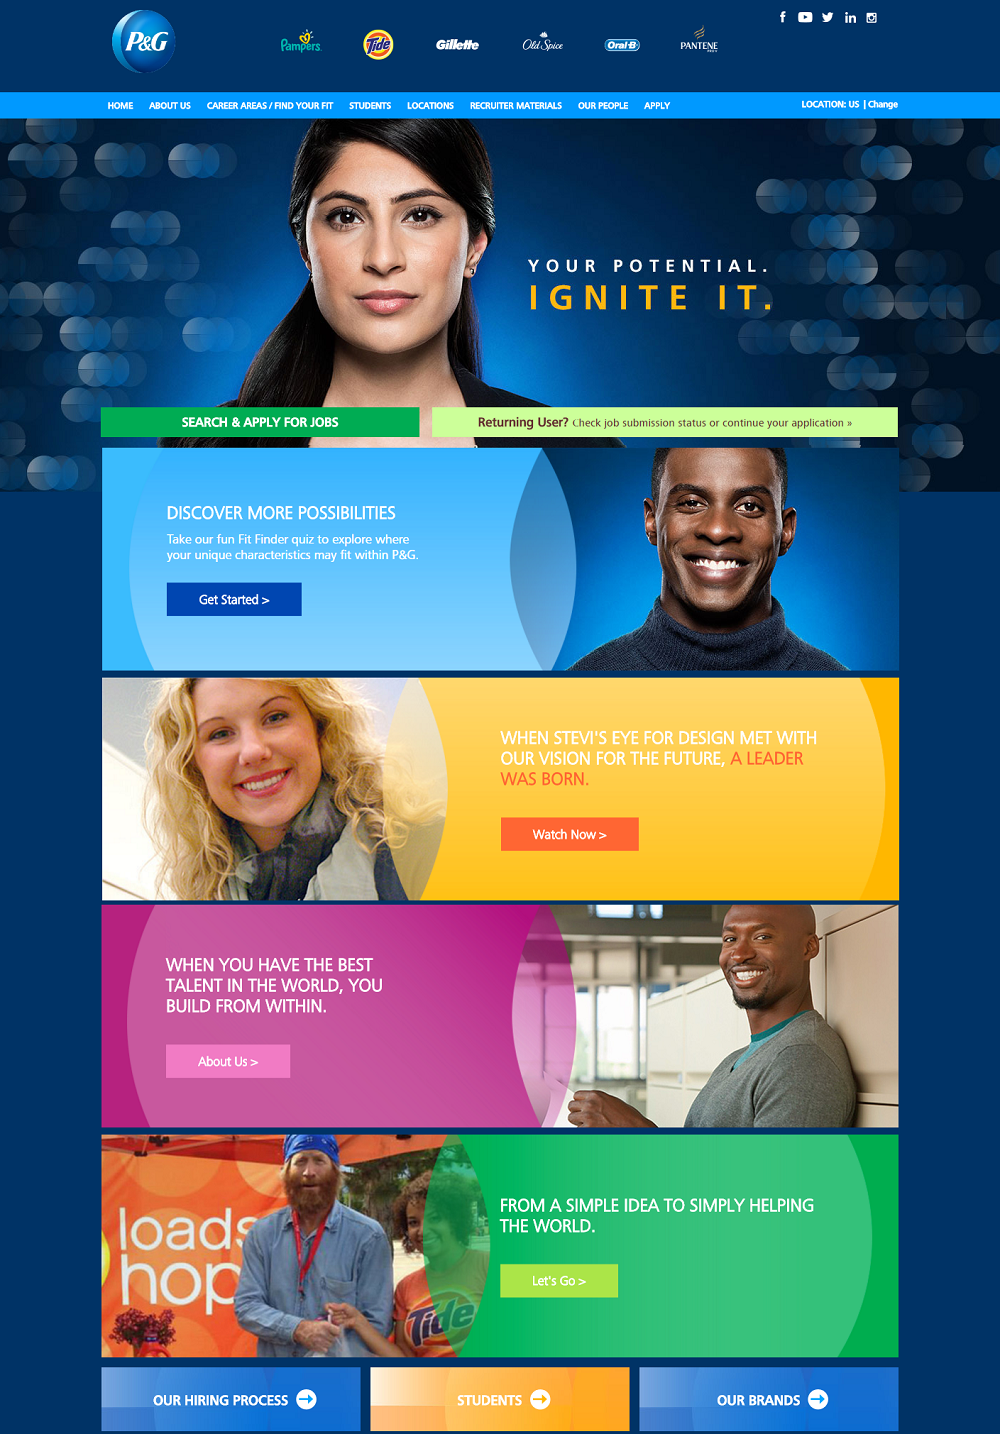 Best Company Career Sites Procter & Gamble - Ongig Blog